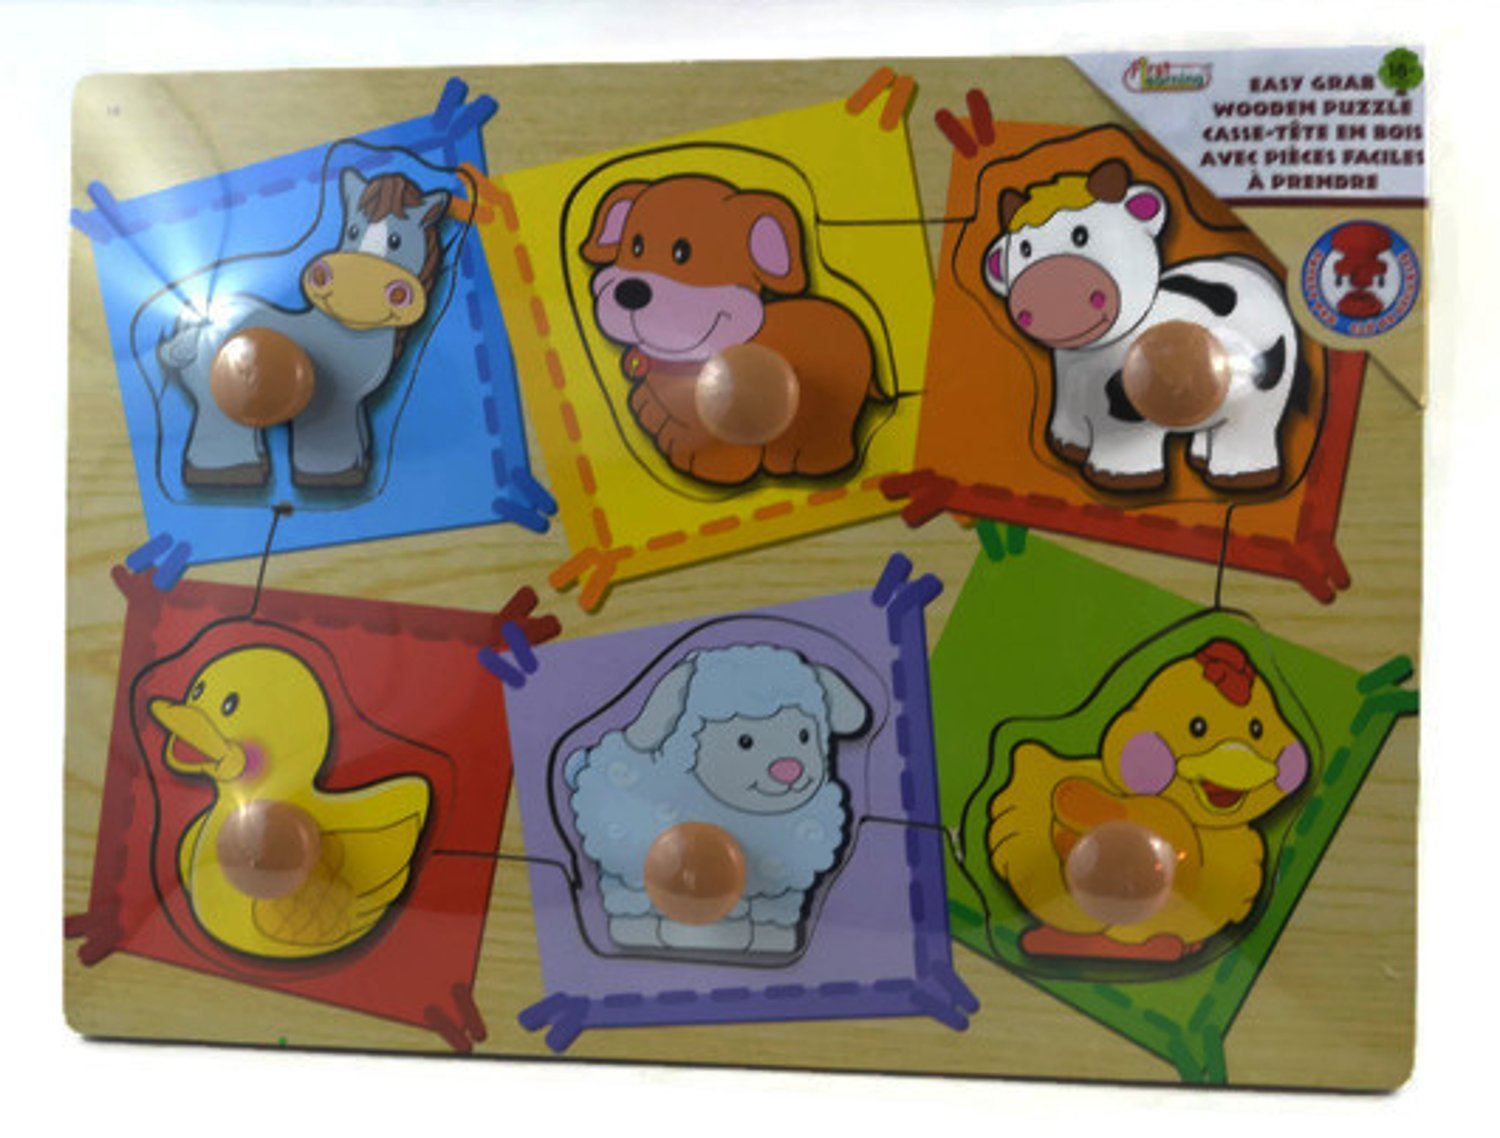 Educational Learning Wooden Puzzle ~ 6 Piece Easy Grab Puzzle (Baby Animals)